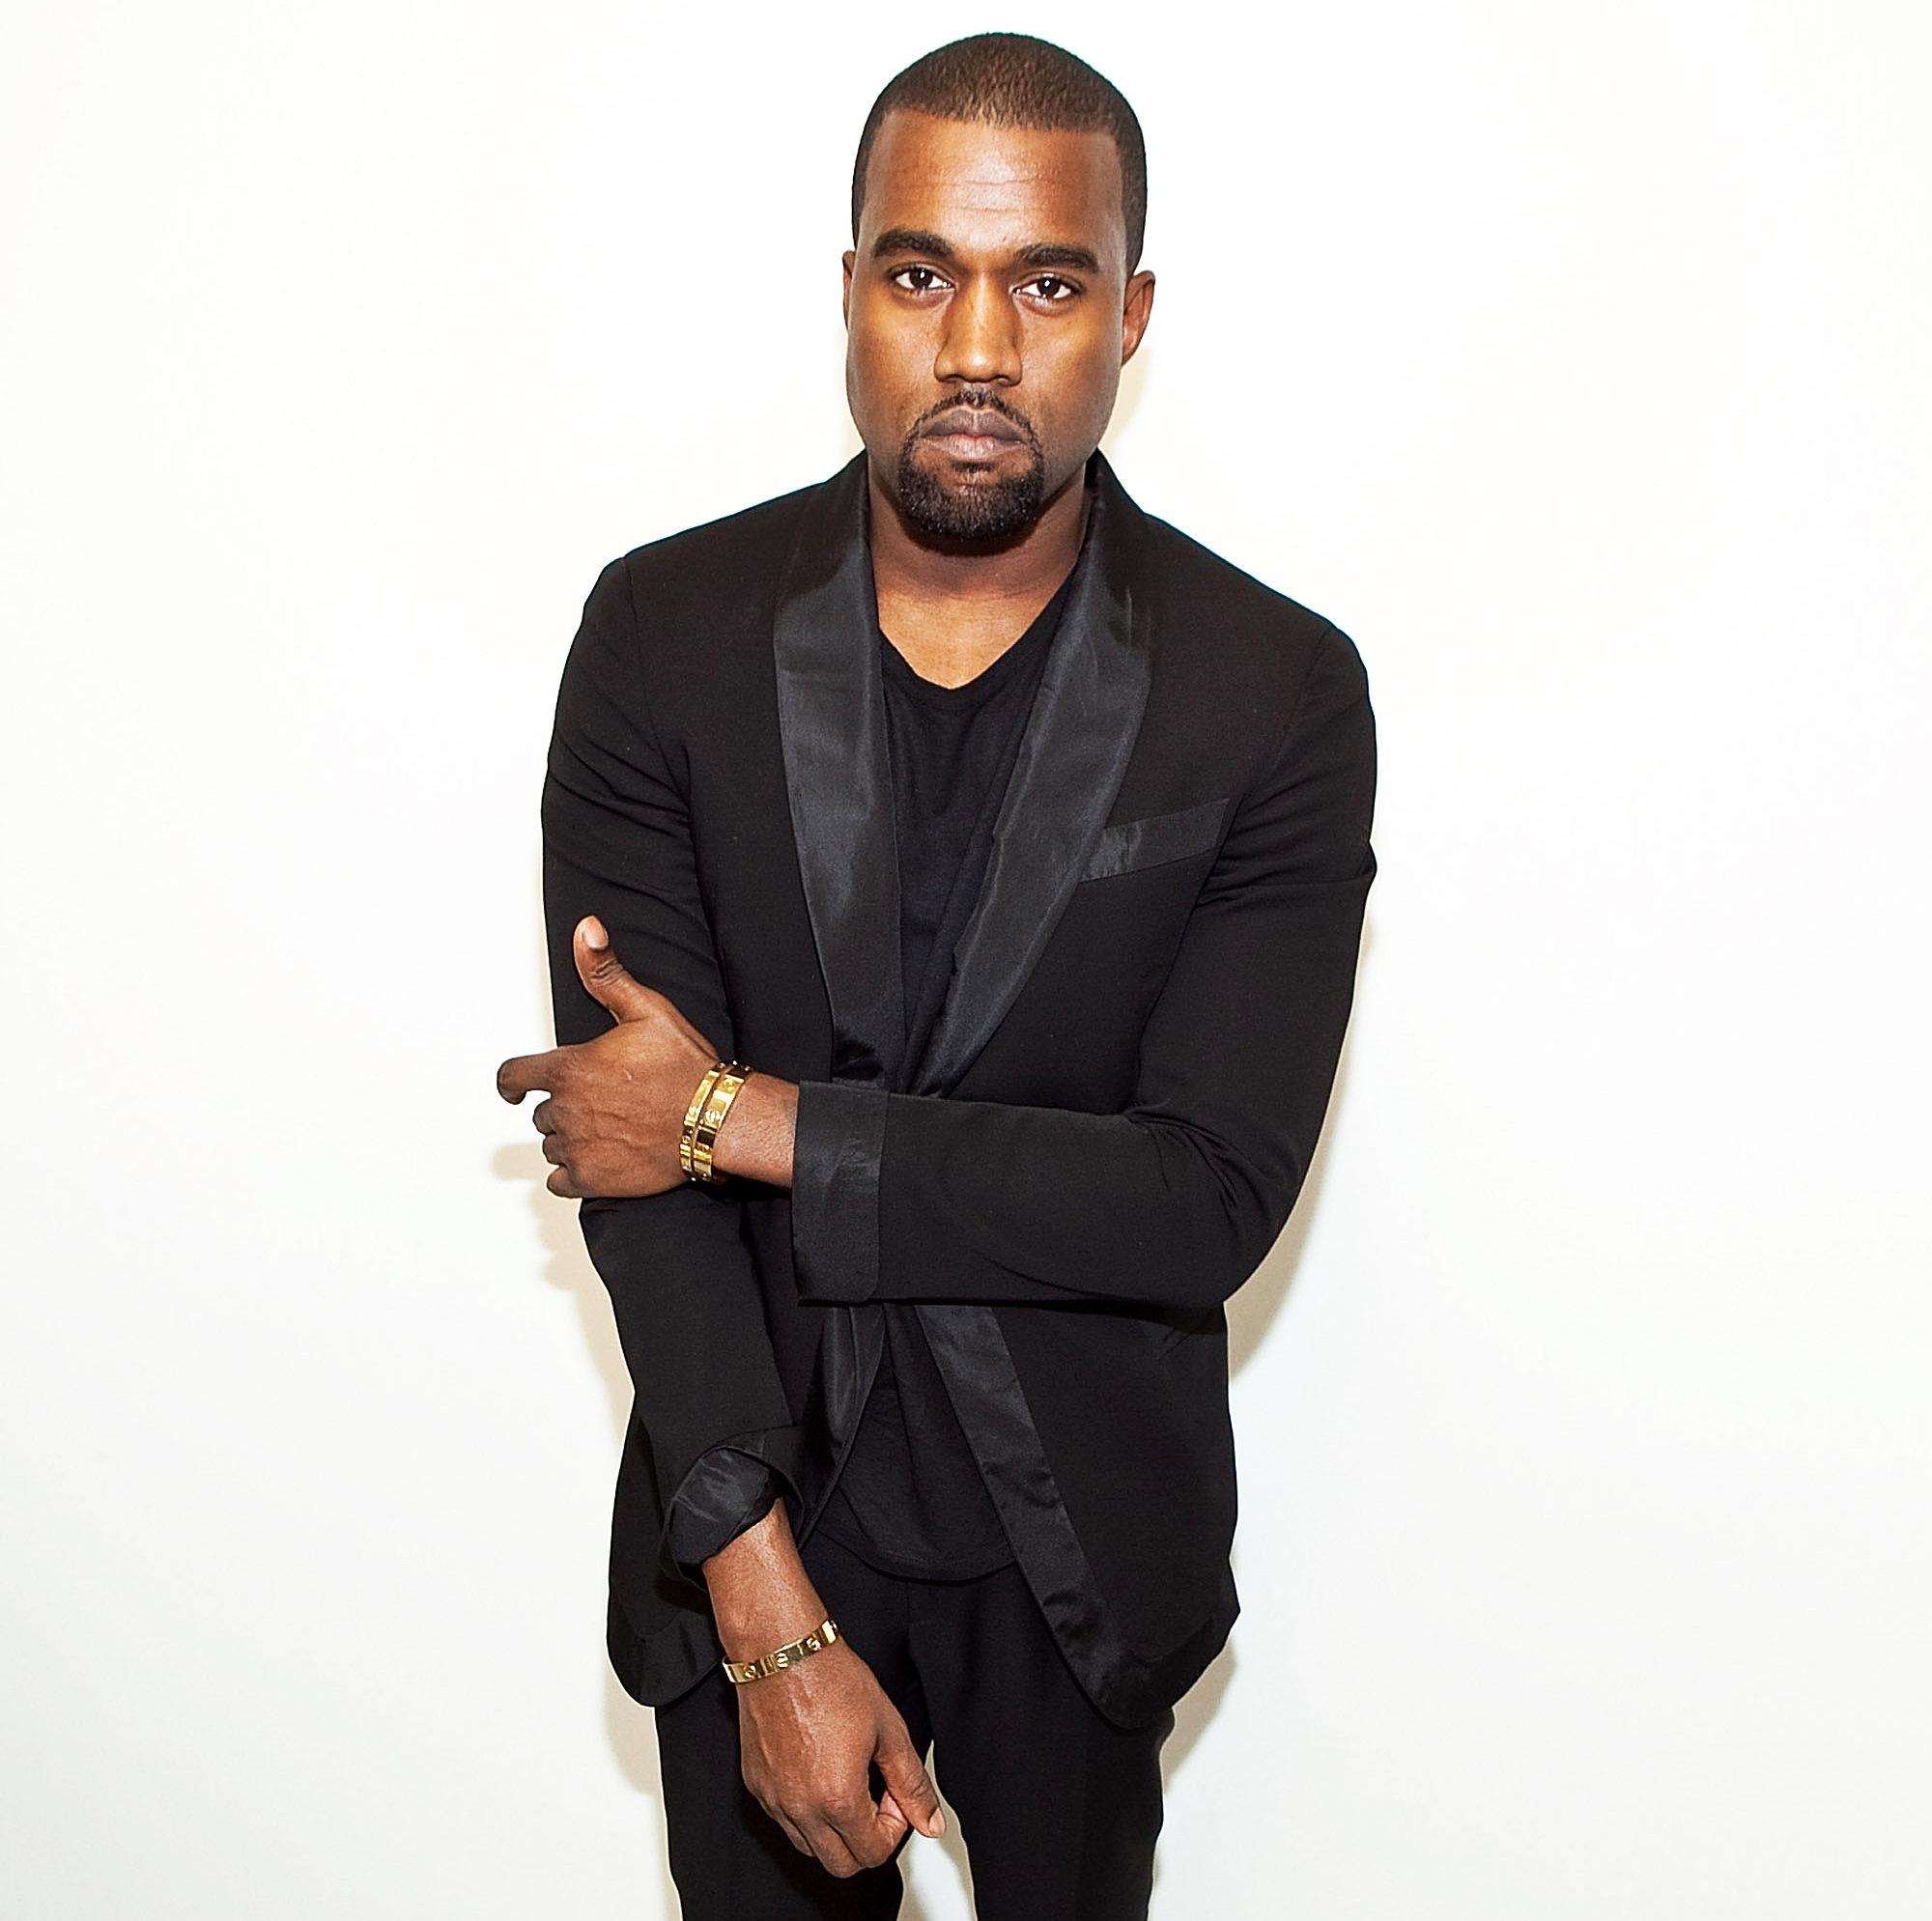 Kanye West Ye Mental Condition